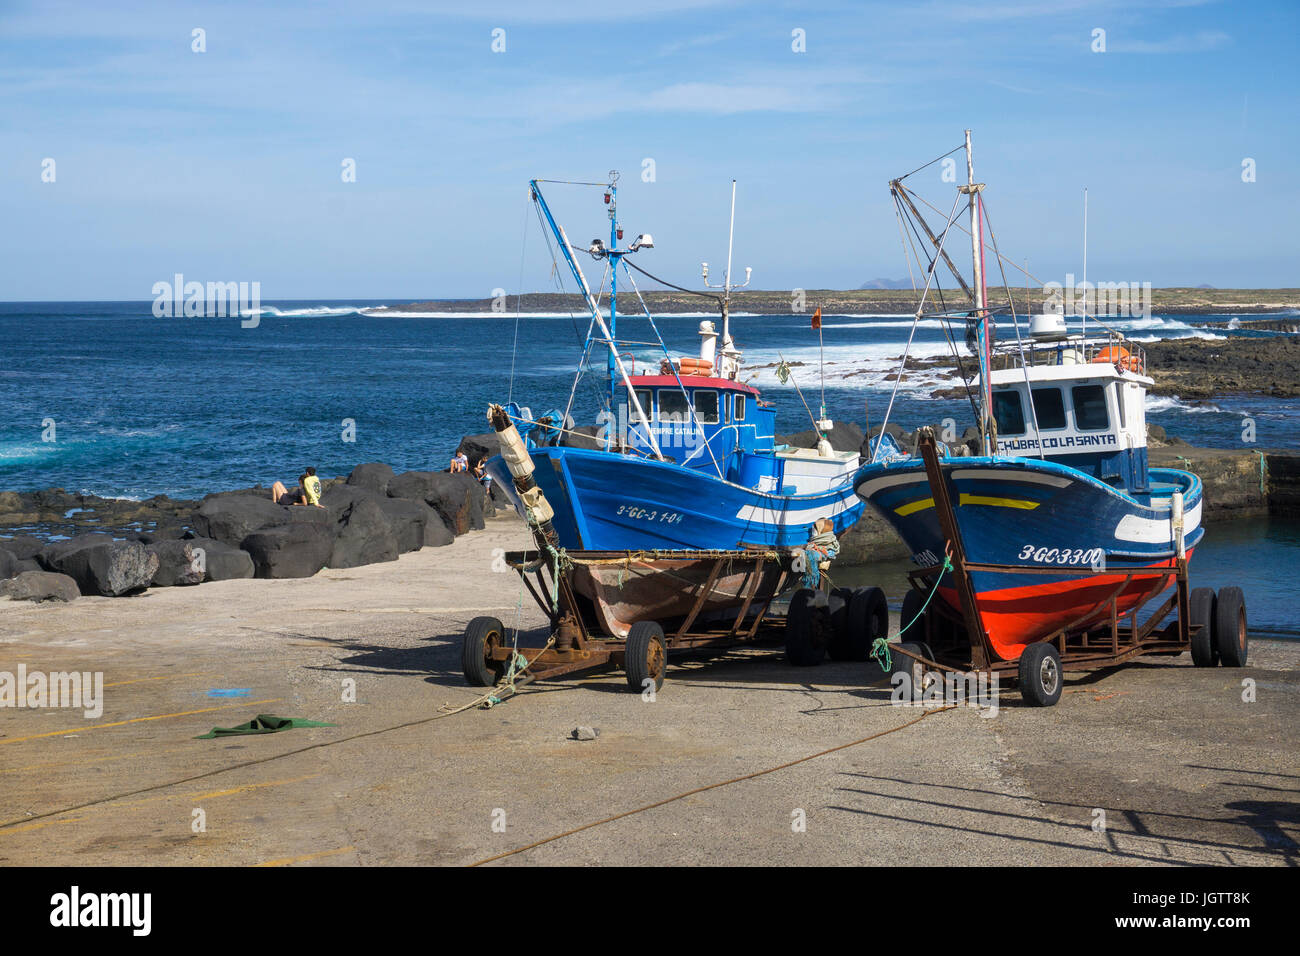 Two fishing boats on trailer at the harbour slip, village La Santa at north coast of Lanzarote island, Canary islands, - Stock Image